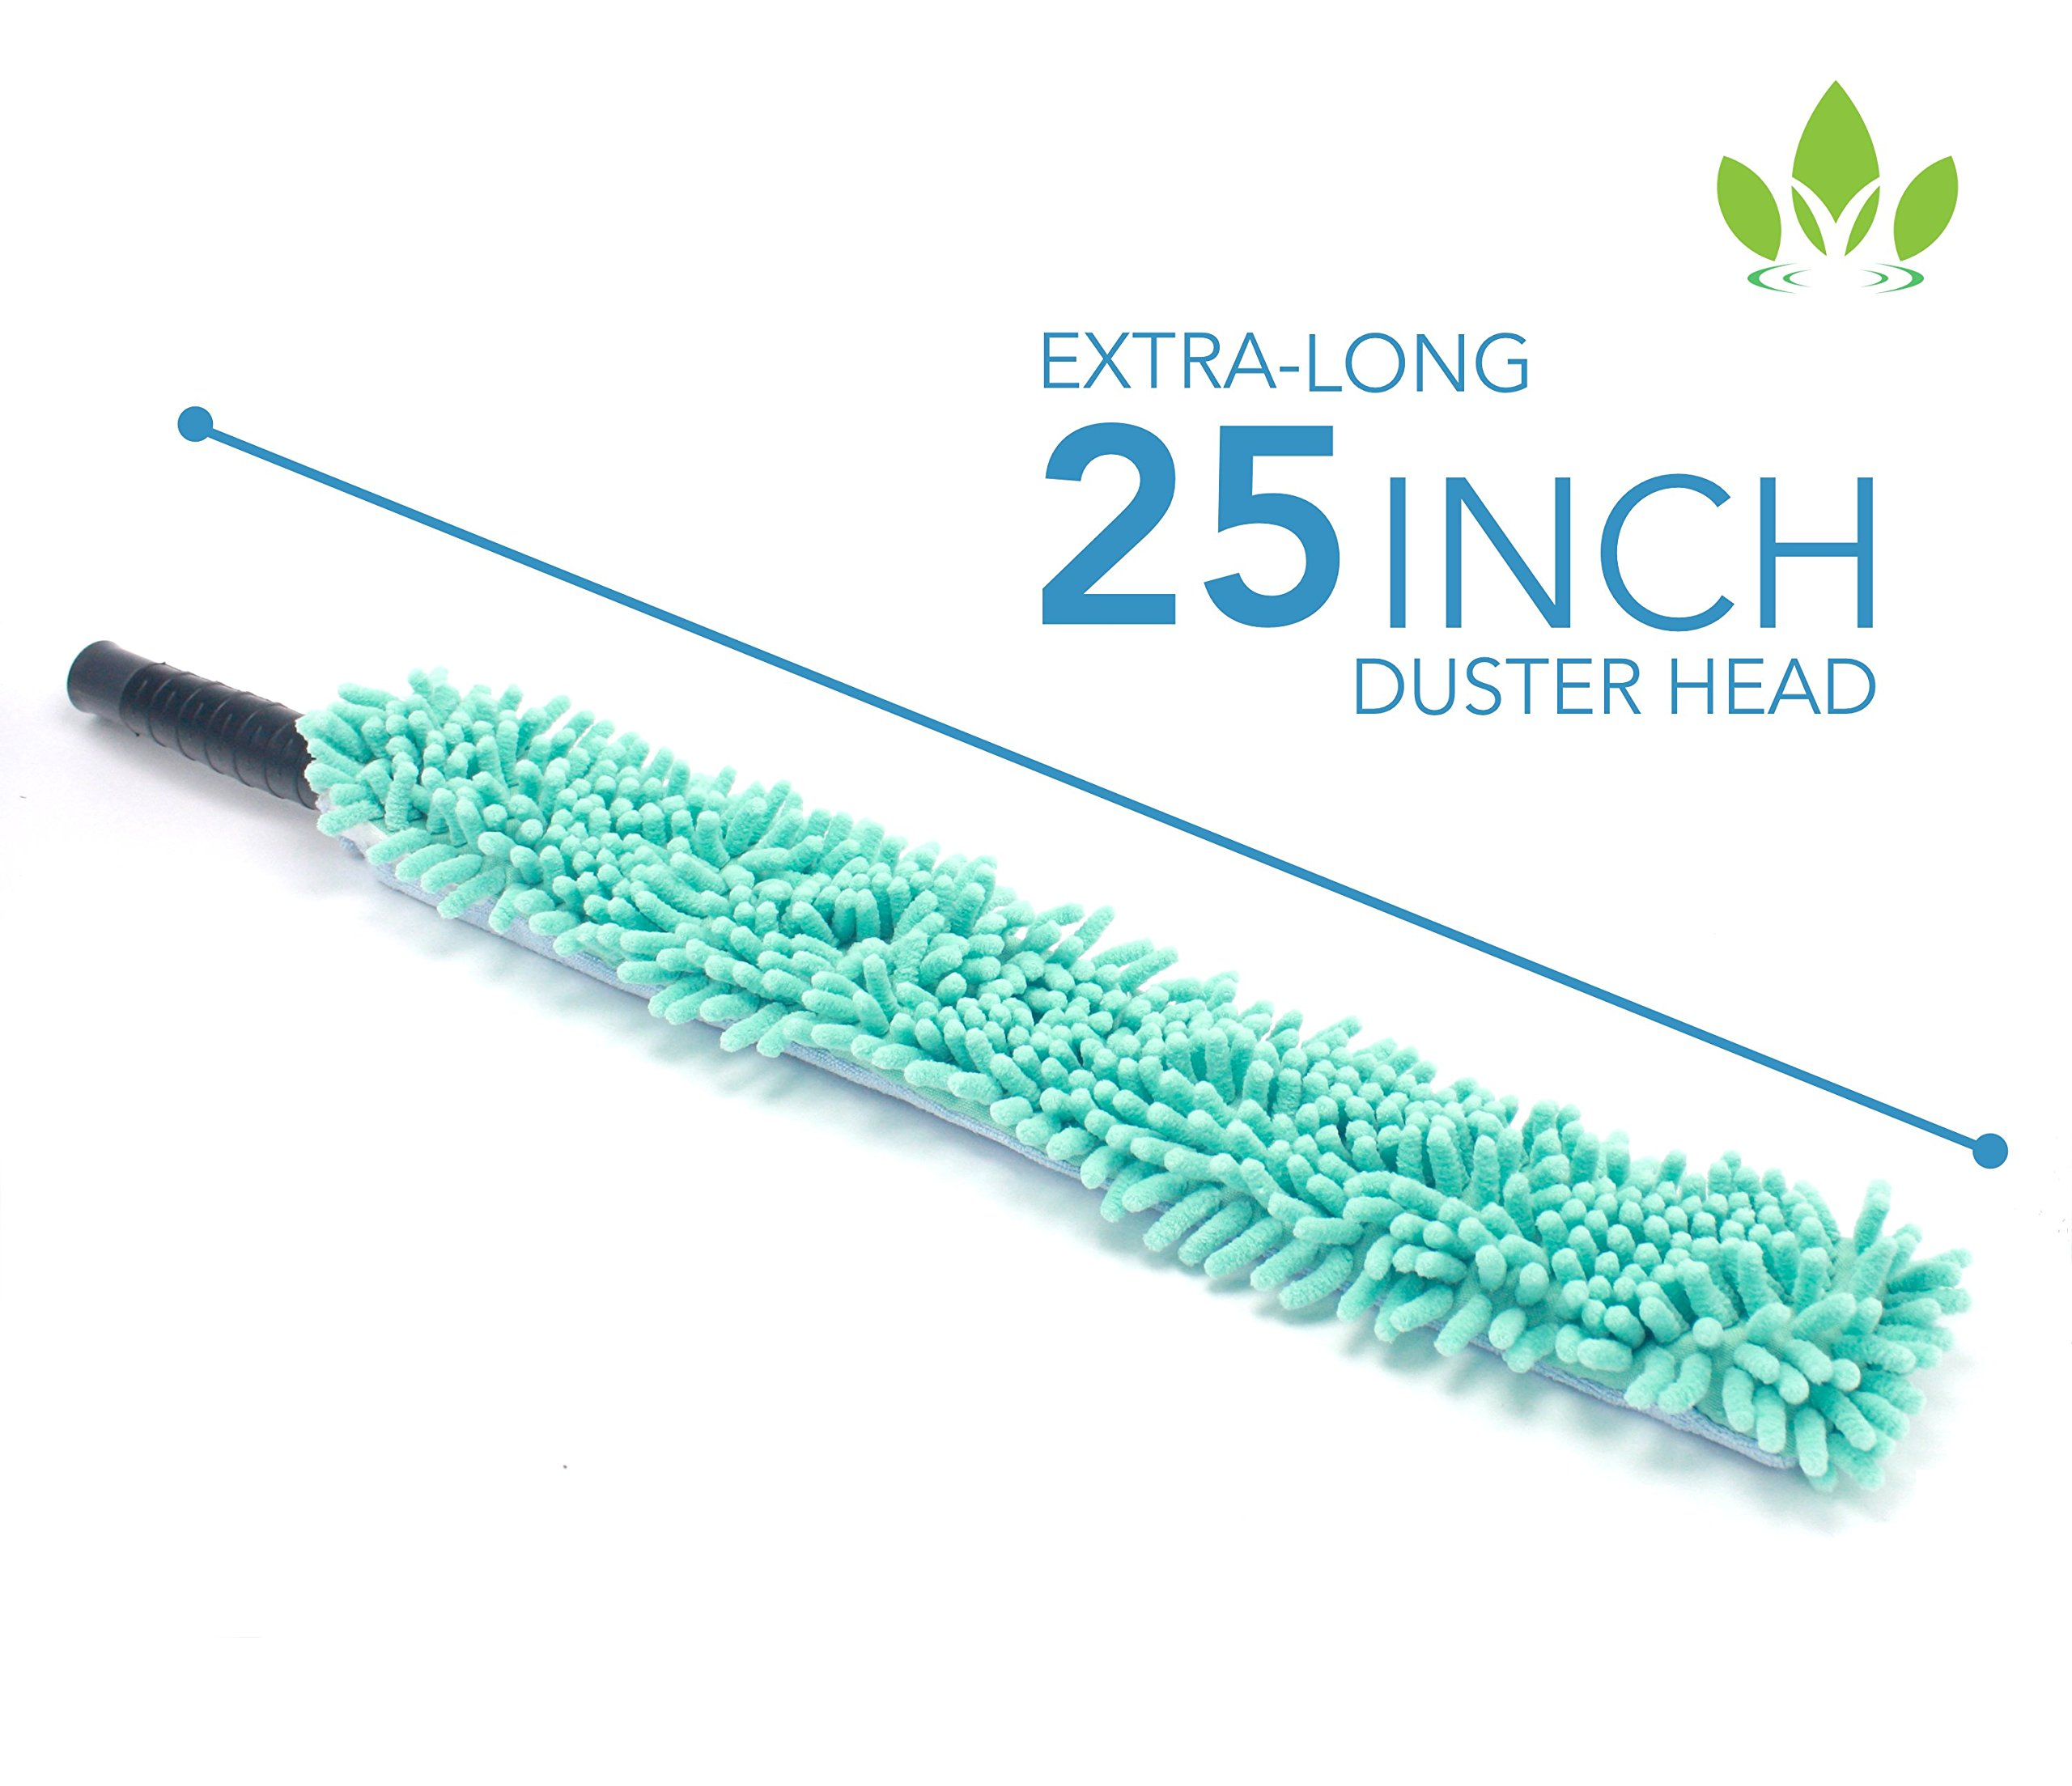 EVERSPROUT 4-Pack Duster Squeegee Kit with Extension-Pole (20+ Foot Reach) | Swivel Squeegee, Hand-Packaged Cobweb Duster, Microfiber Feather Duster, Flexible Ceiling Fan Duster, 12 ft Telescopic Pole by EVERSPROUT (Image #9)